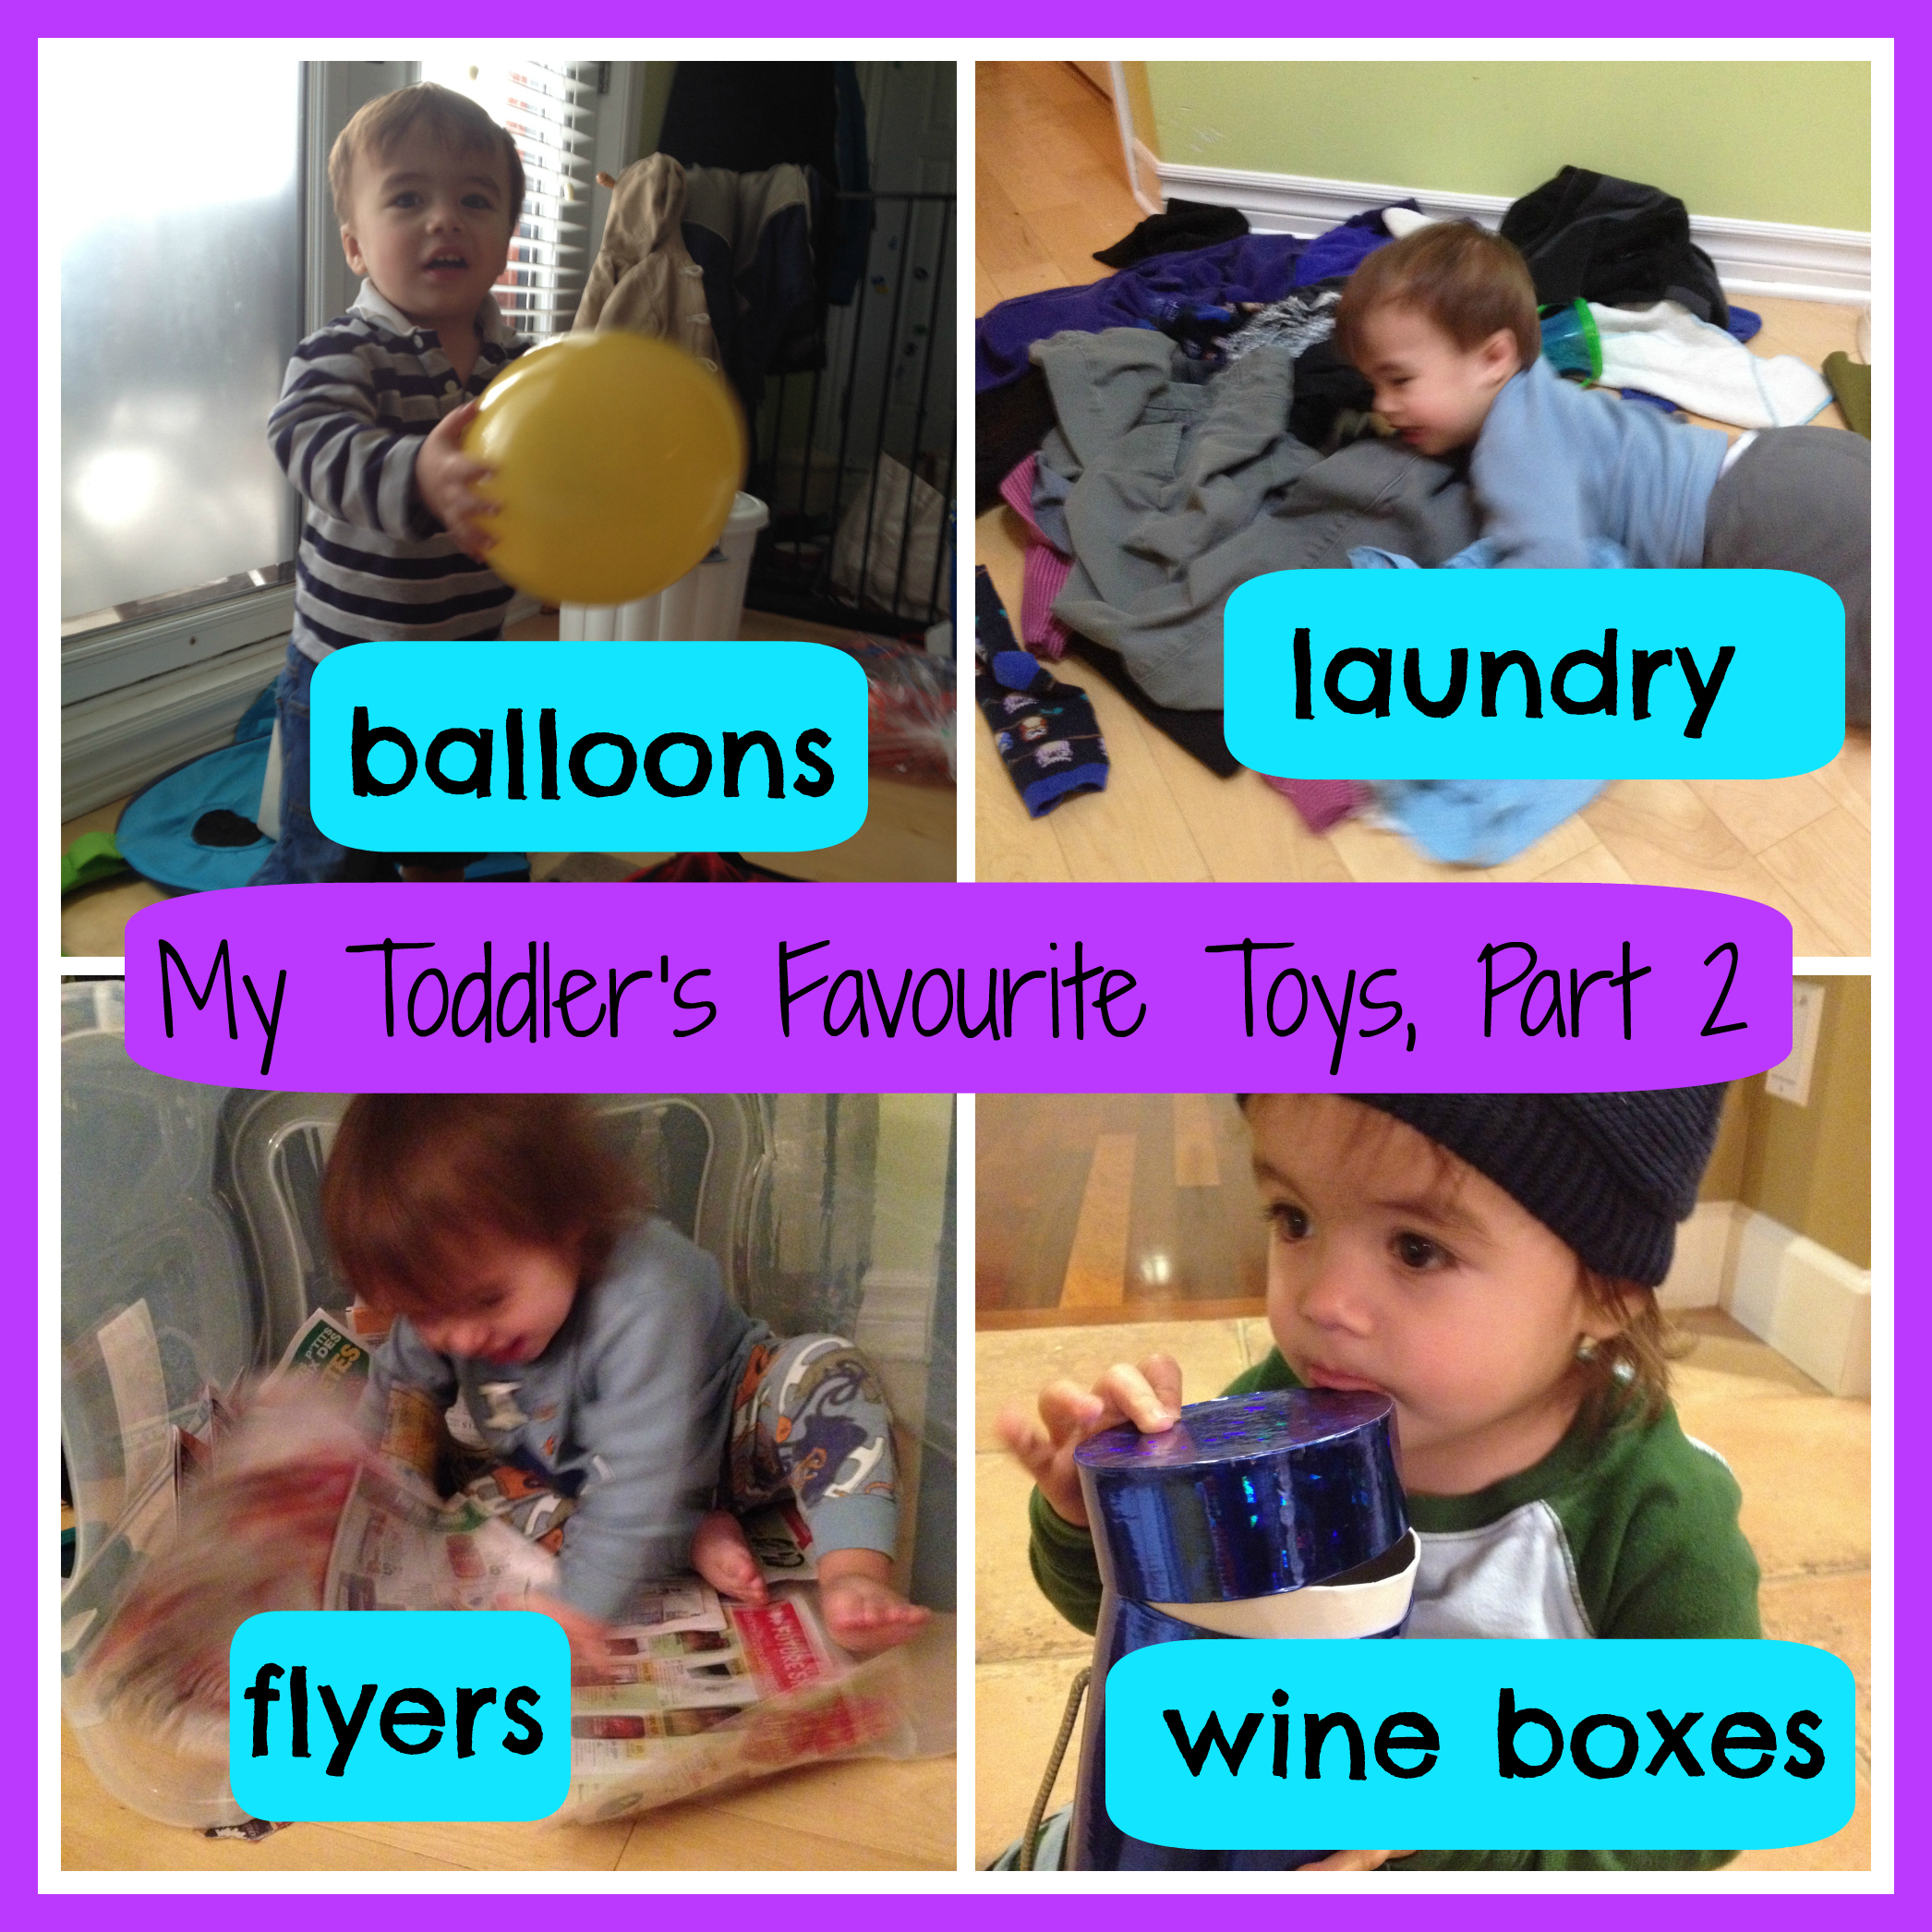 My toddler's favourite toys